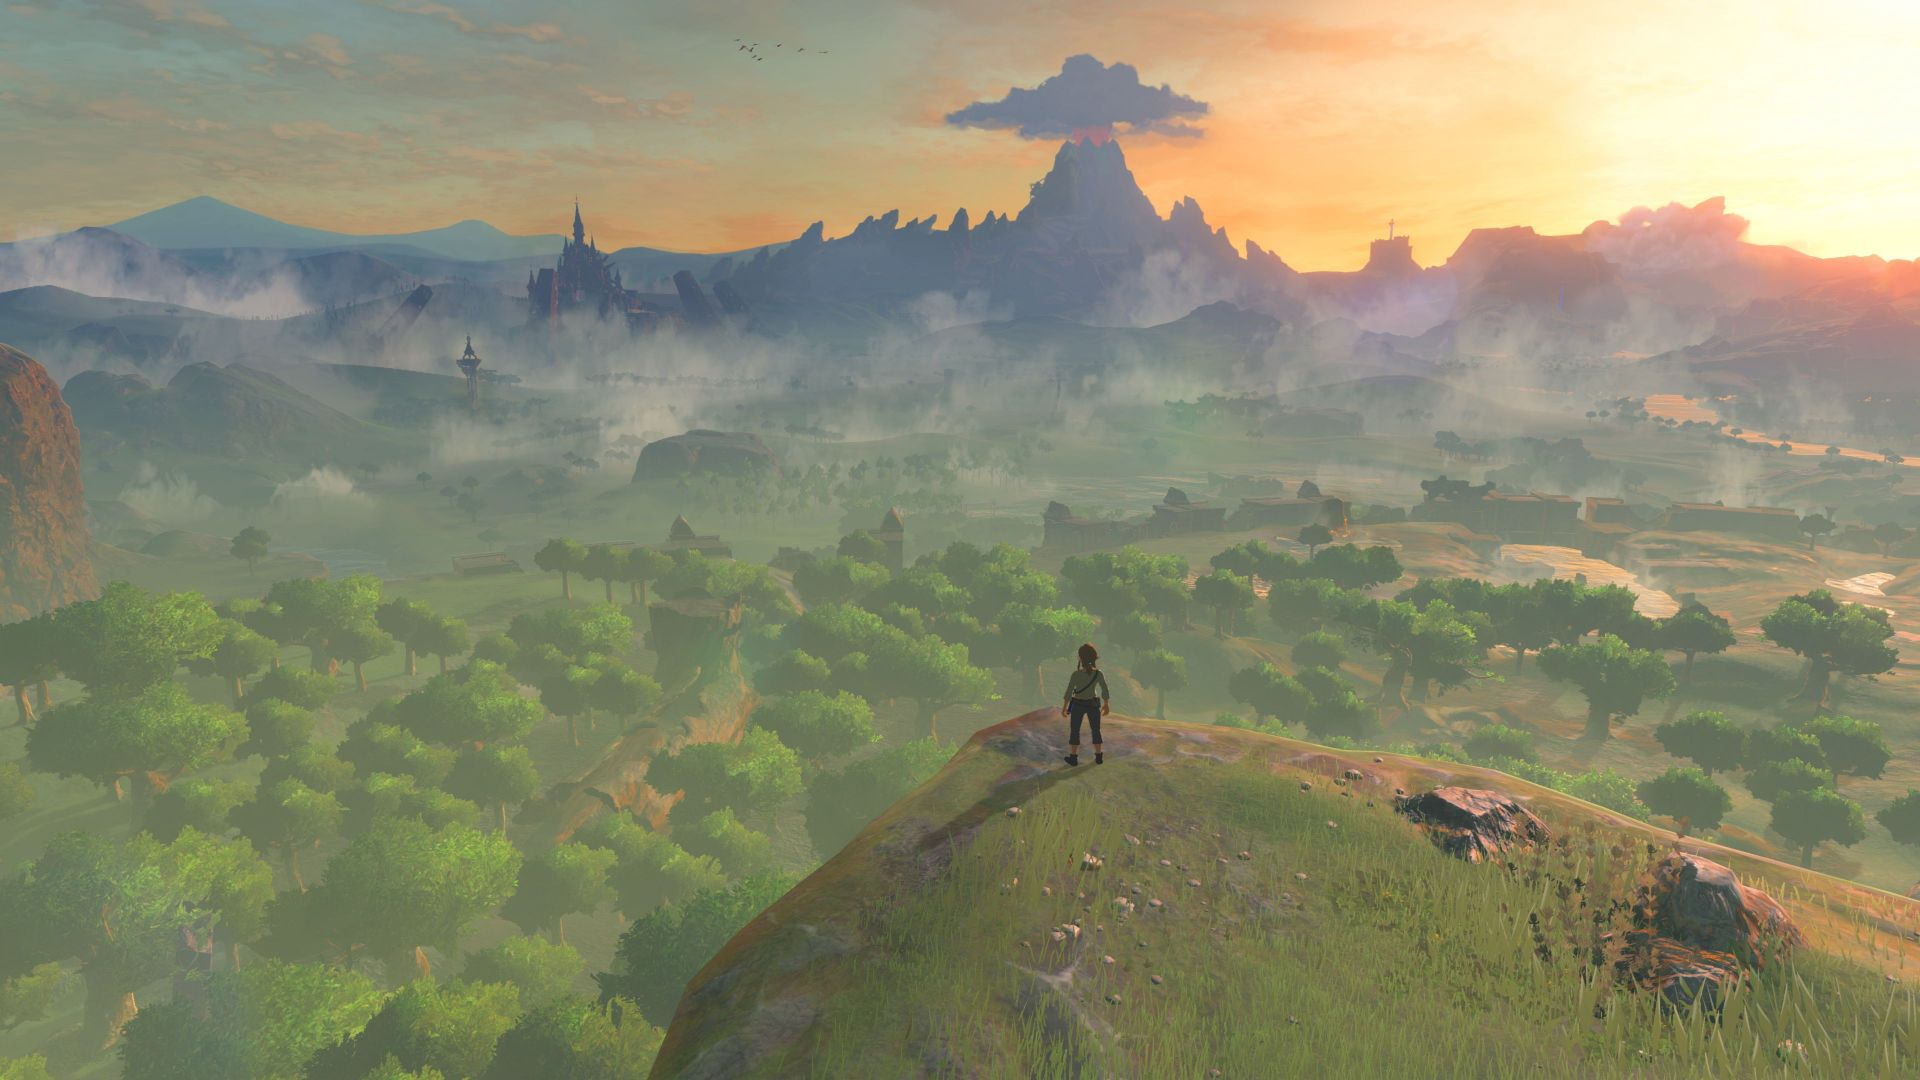 легенда зельды, The Legend of Zelda: Breath of the Wild, природа, лучшие игры, The Legend of Zelda: Breath of the Wild, best games, nature, Wii U, NX (horizontal)